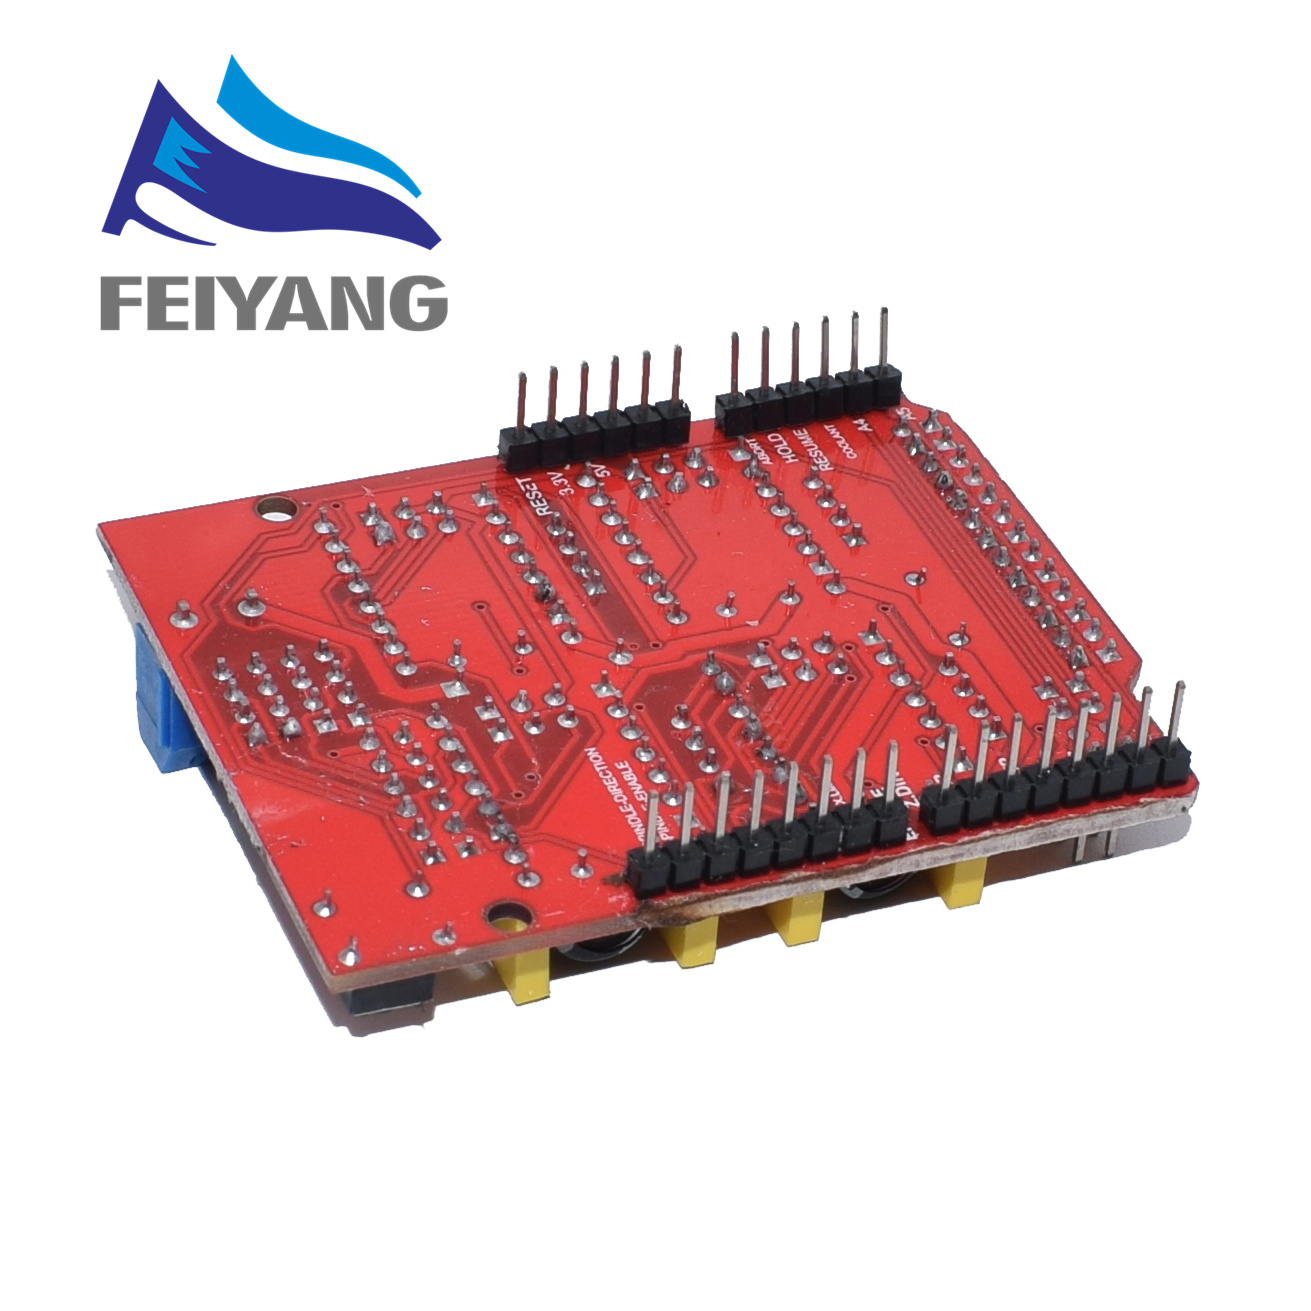 Image 5 - New CNC Shield V4 shield v3 Engraving Machine / 3D Printer / A4988 Driver Expansion Board for arduino Diy Kit-in Integrated Circuits from Electronic Components & Supplies